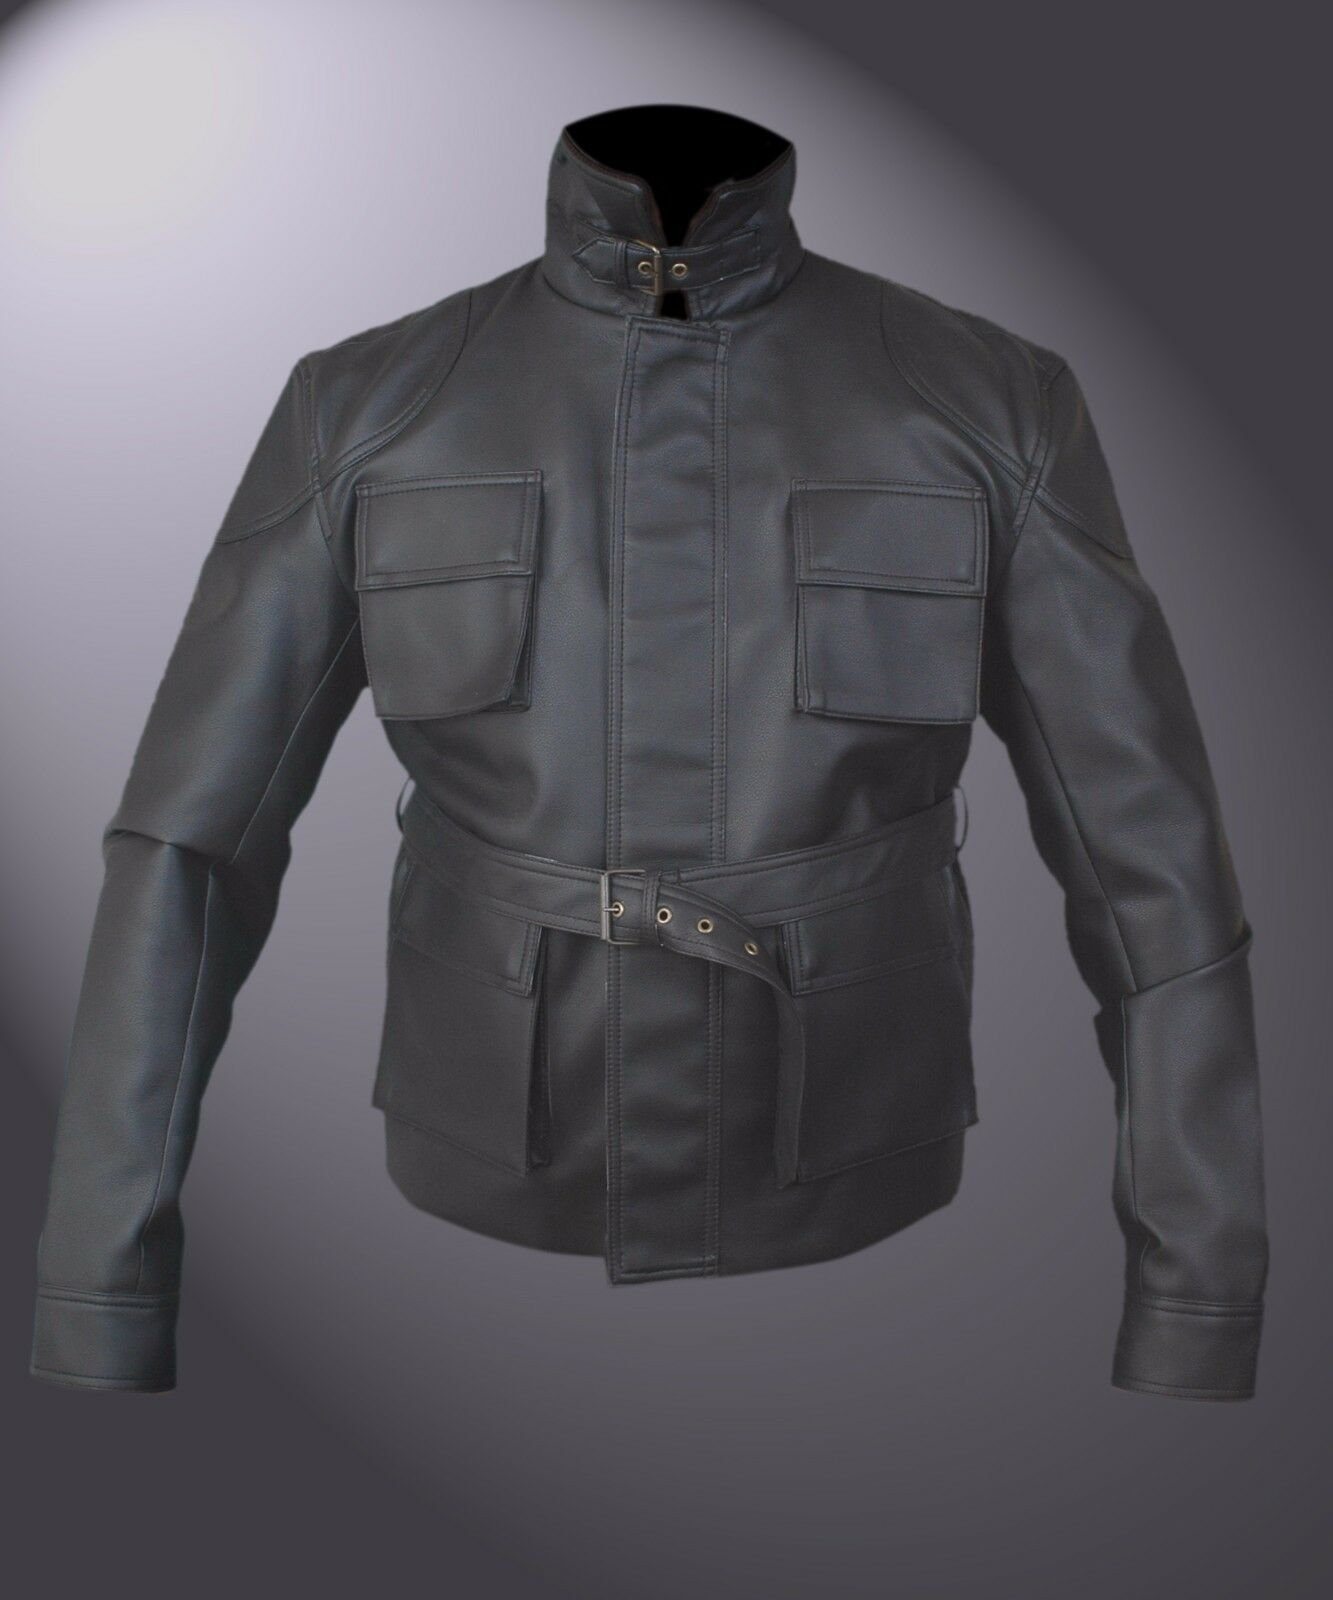 Bane Batman The Dark Knight Rises Tom Hardy Military Coat